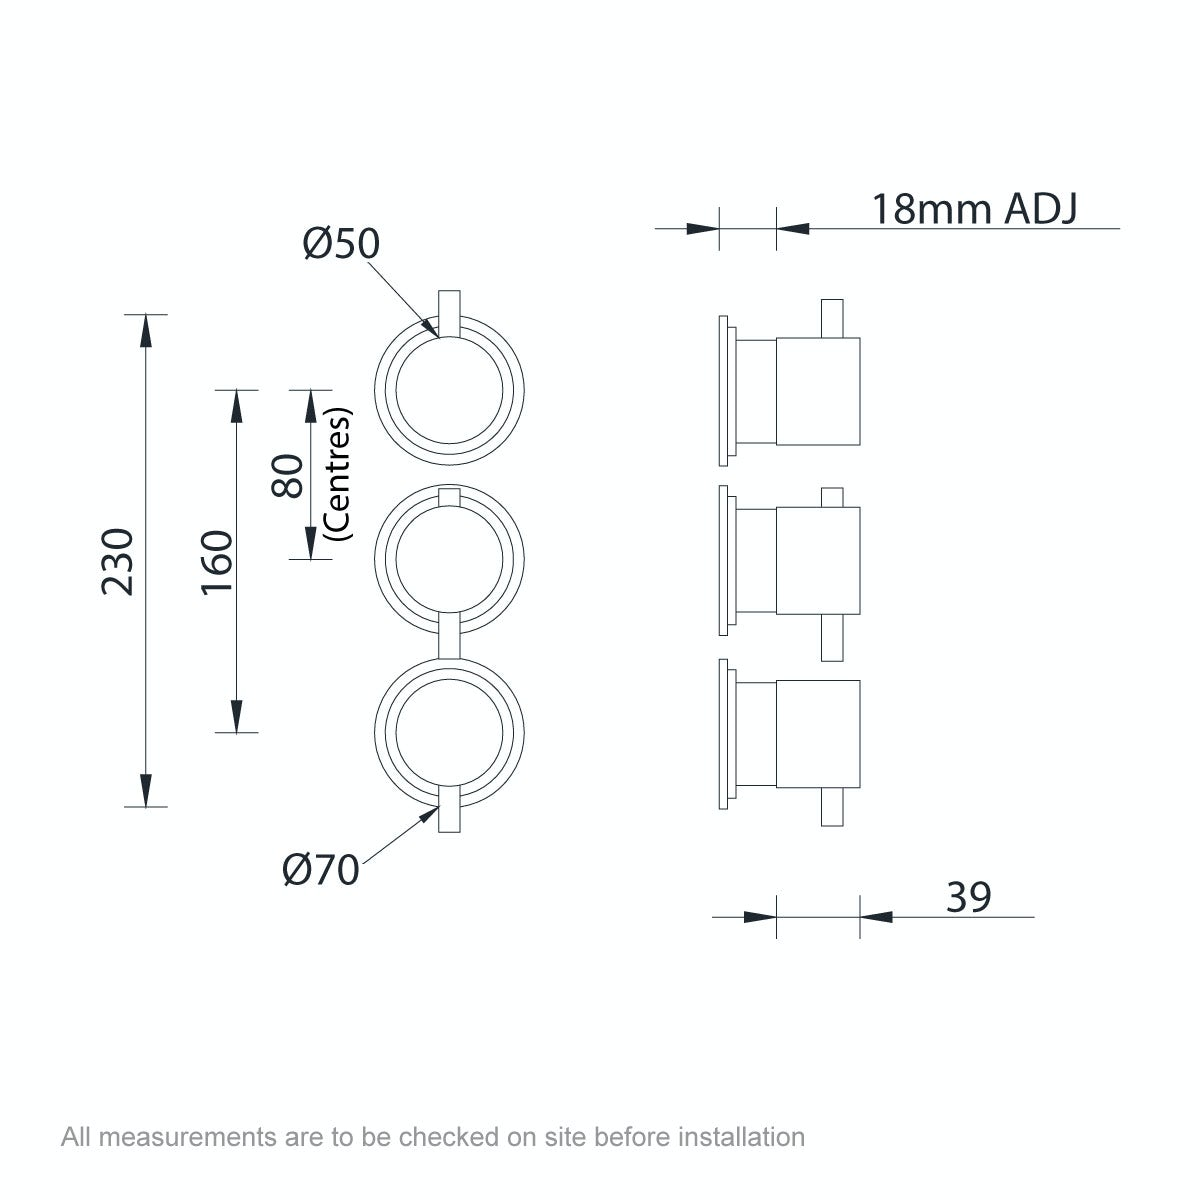 Dimensions for Mode Hardy round triple thermostatic shower valve